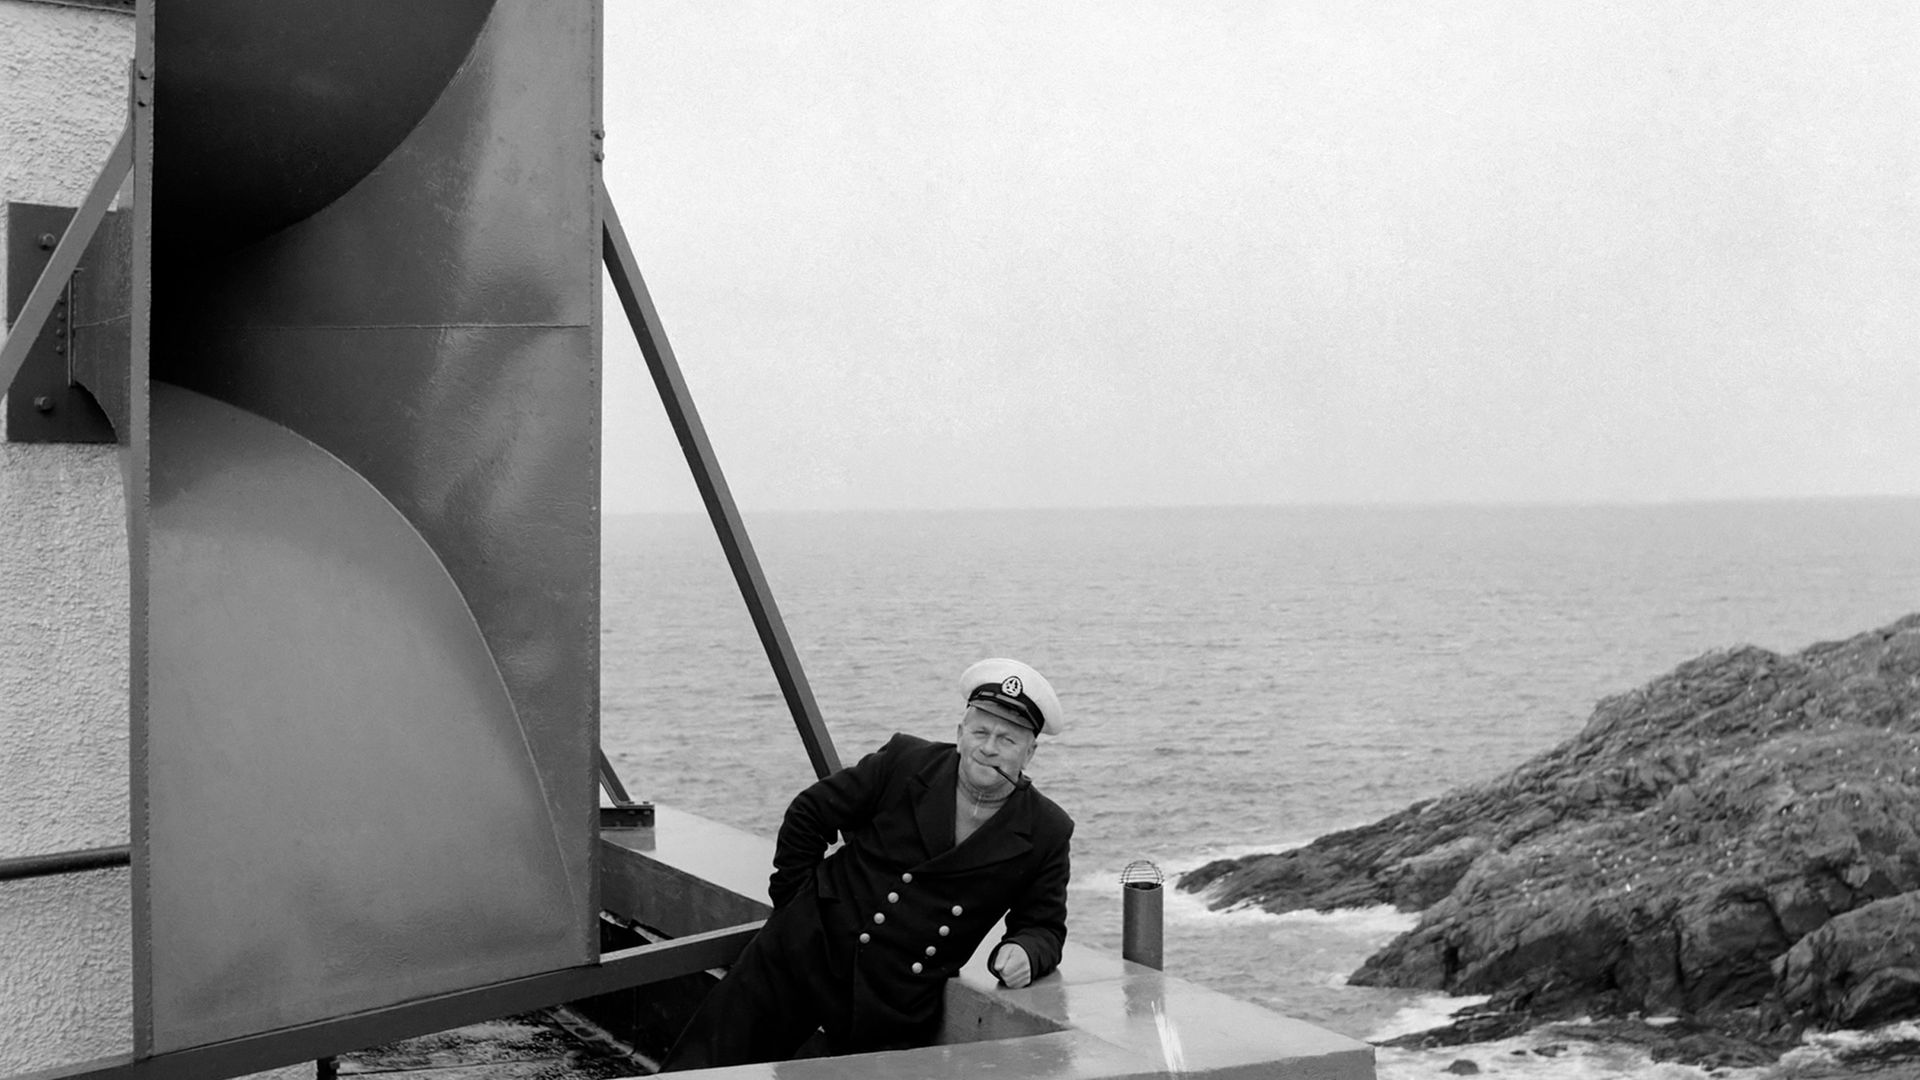 A lighthouse keeper at Strathy Point, on the north coast of Scotland, poses in front of the site's vast foghorn, in 1960 - Credit: Mirrorpix via Getty Images